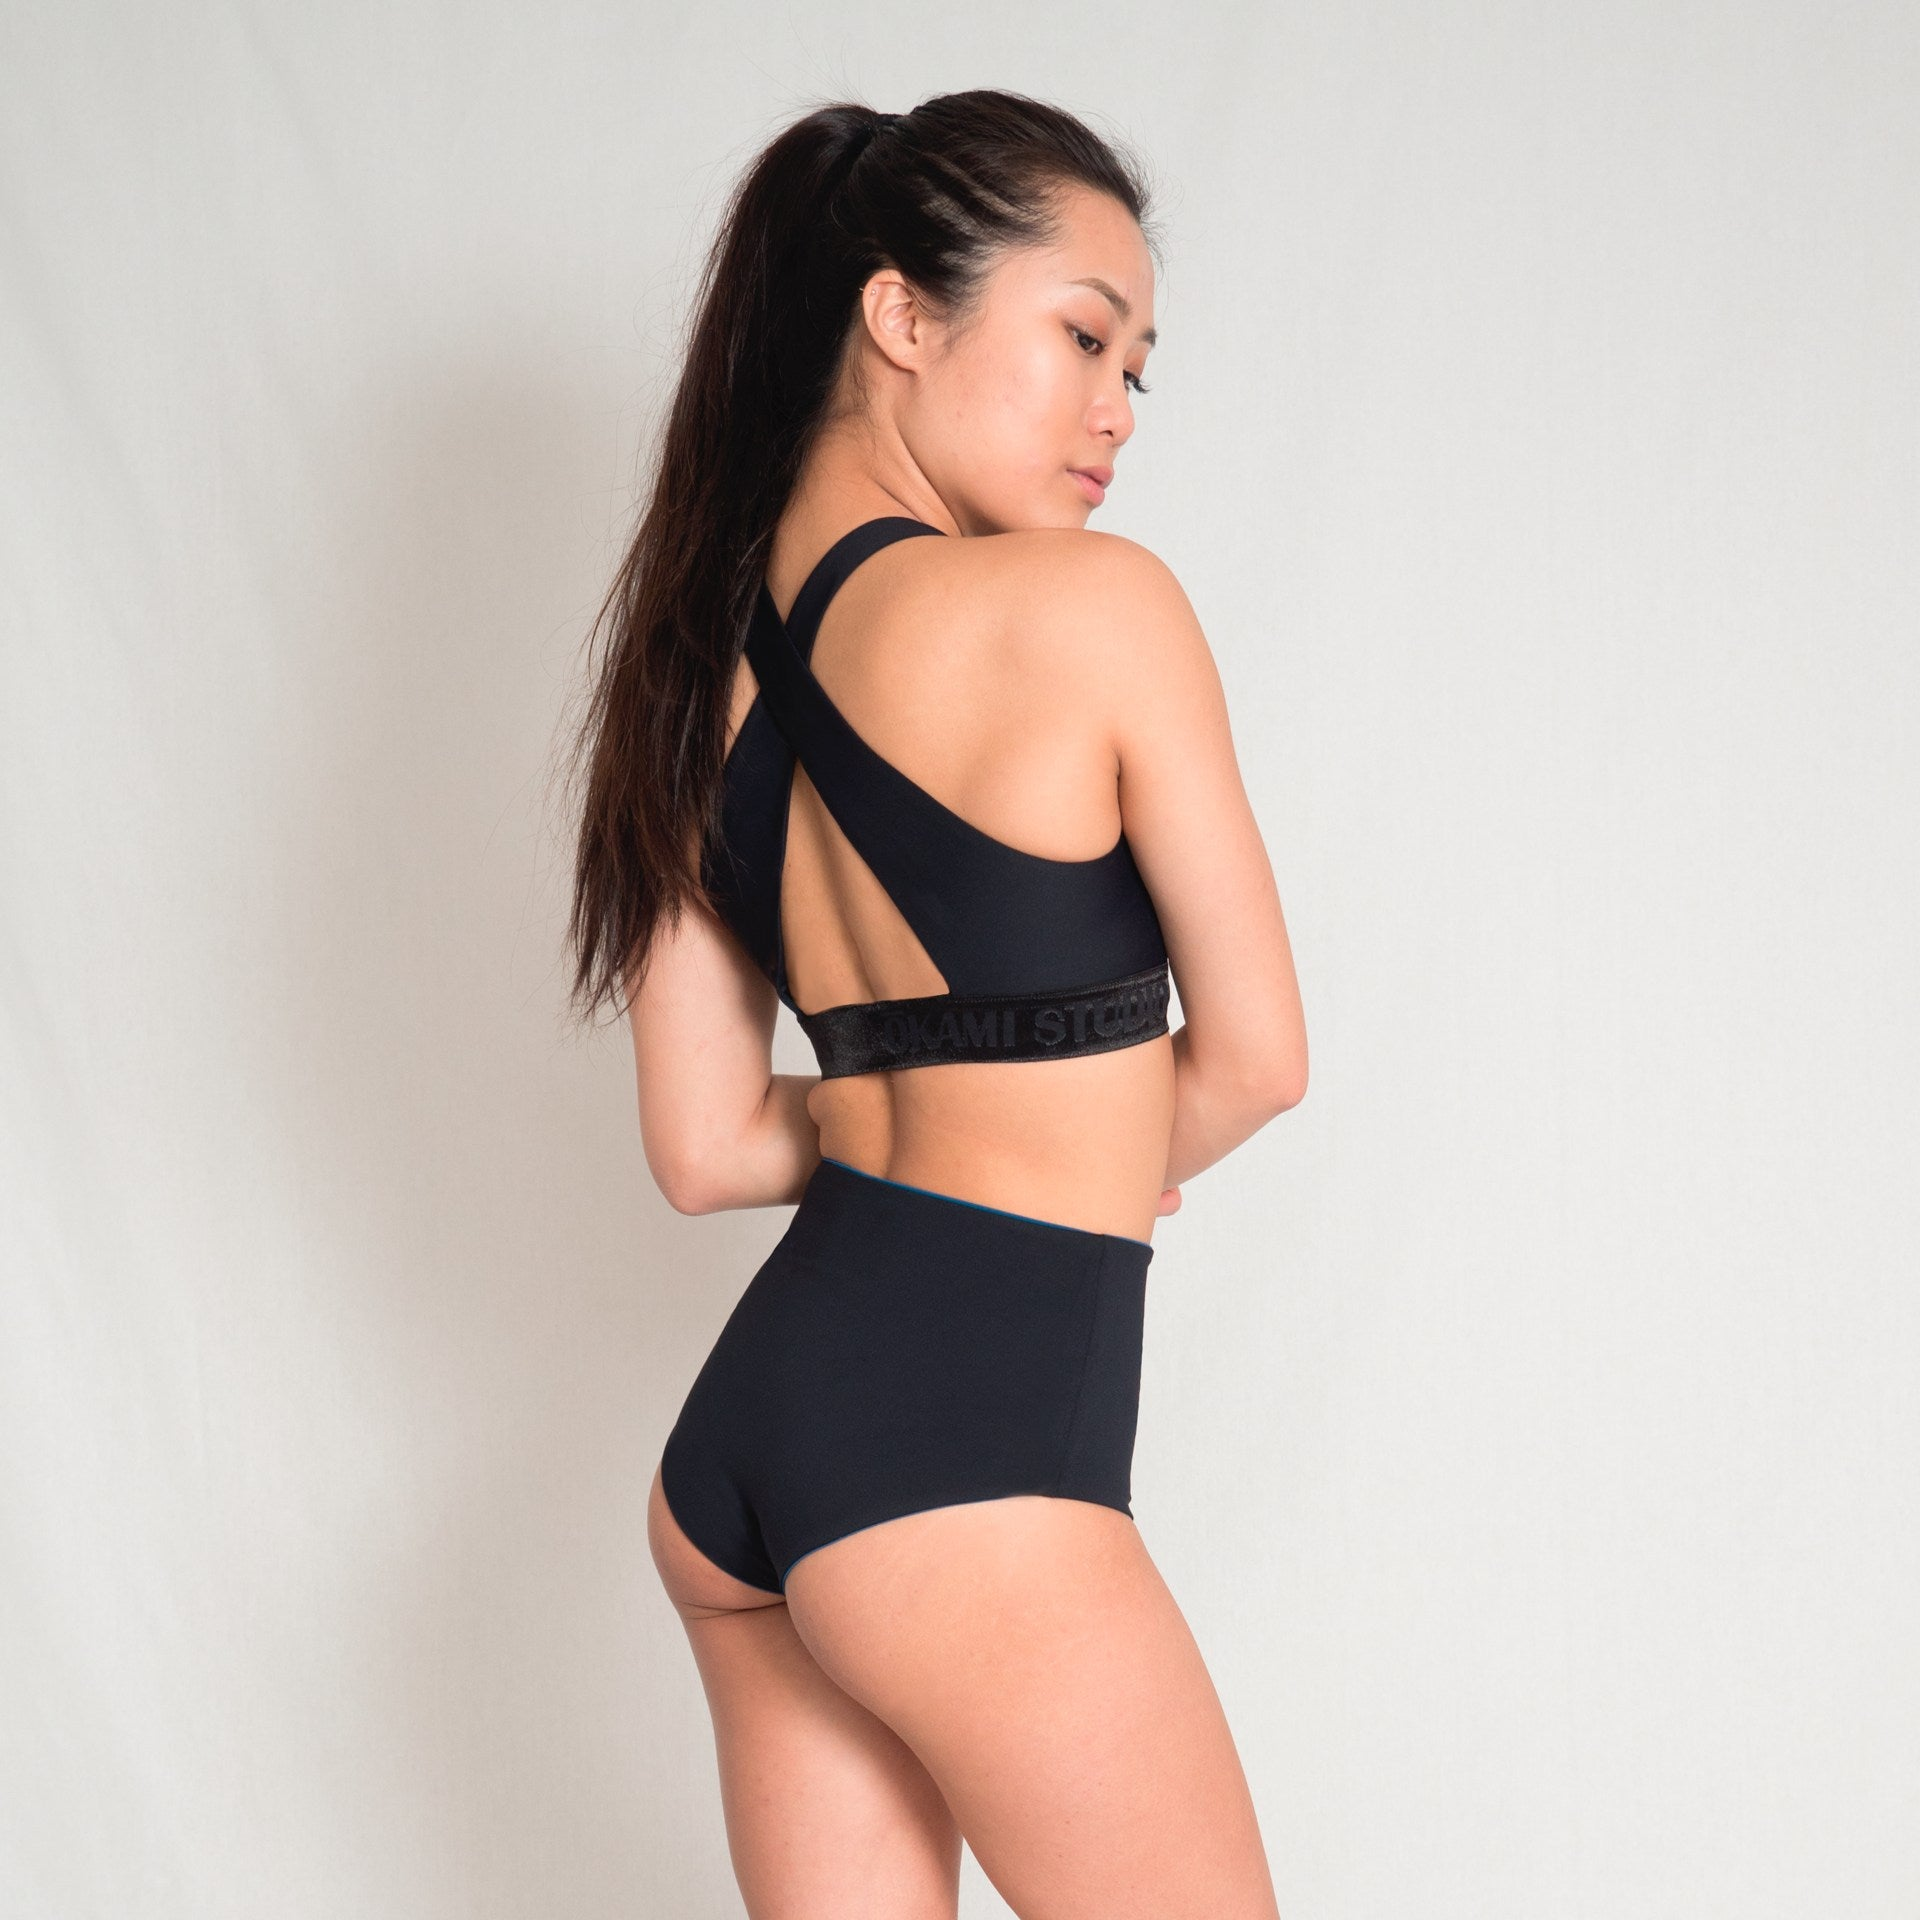 Pole dance wear in black